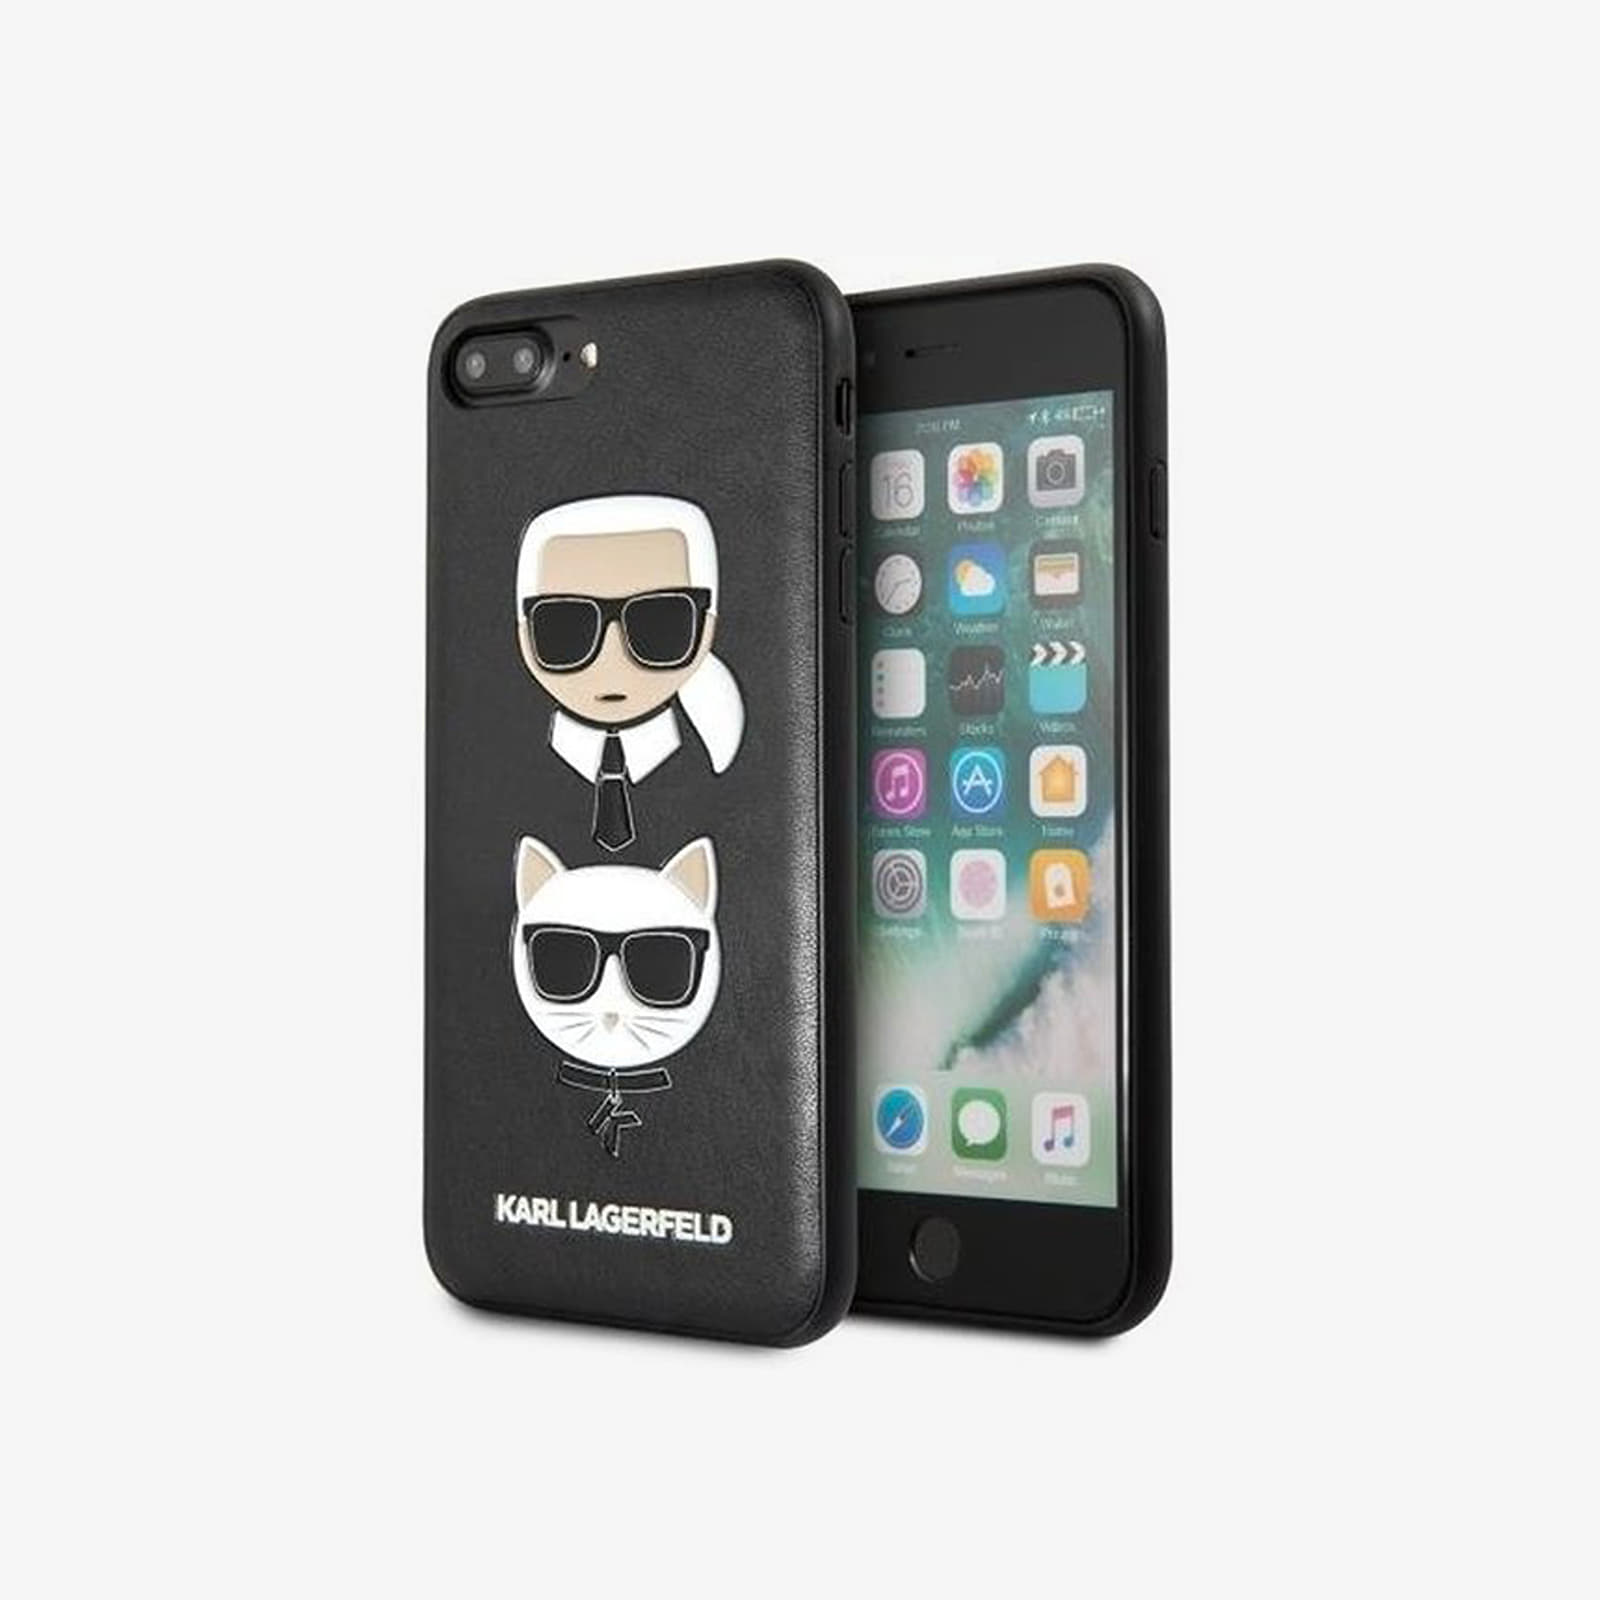 Karl Lagerfeld Karl and Choupette iPhone 7/8 Plus Case Black Universal